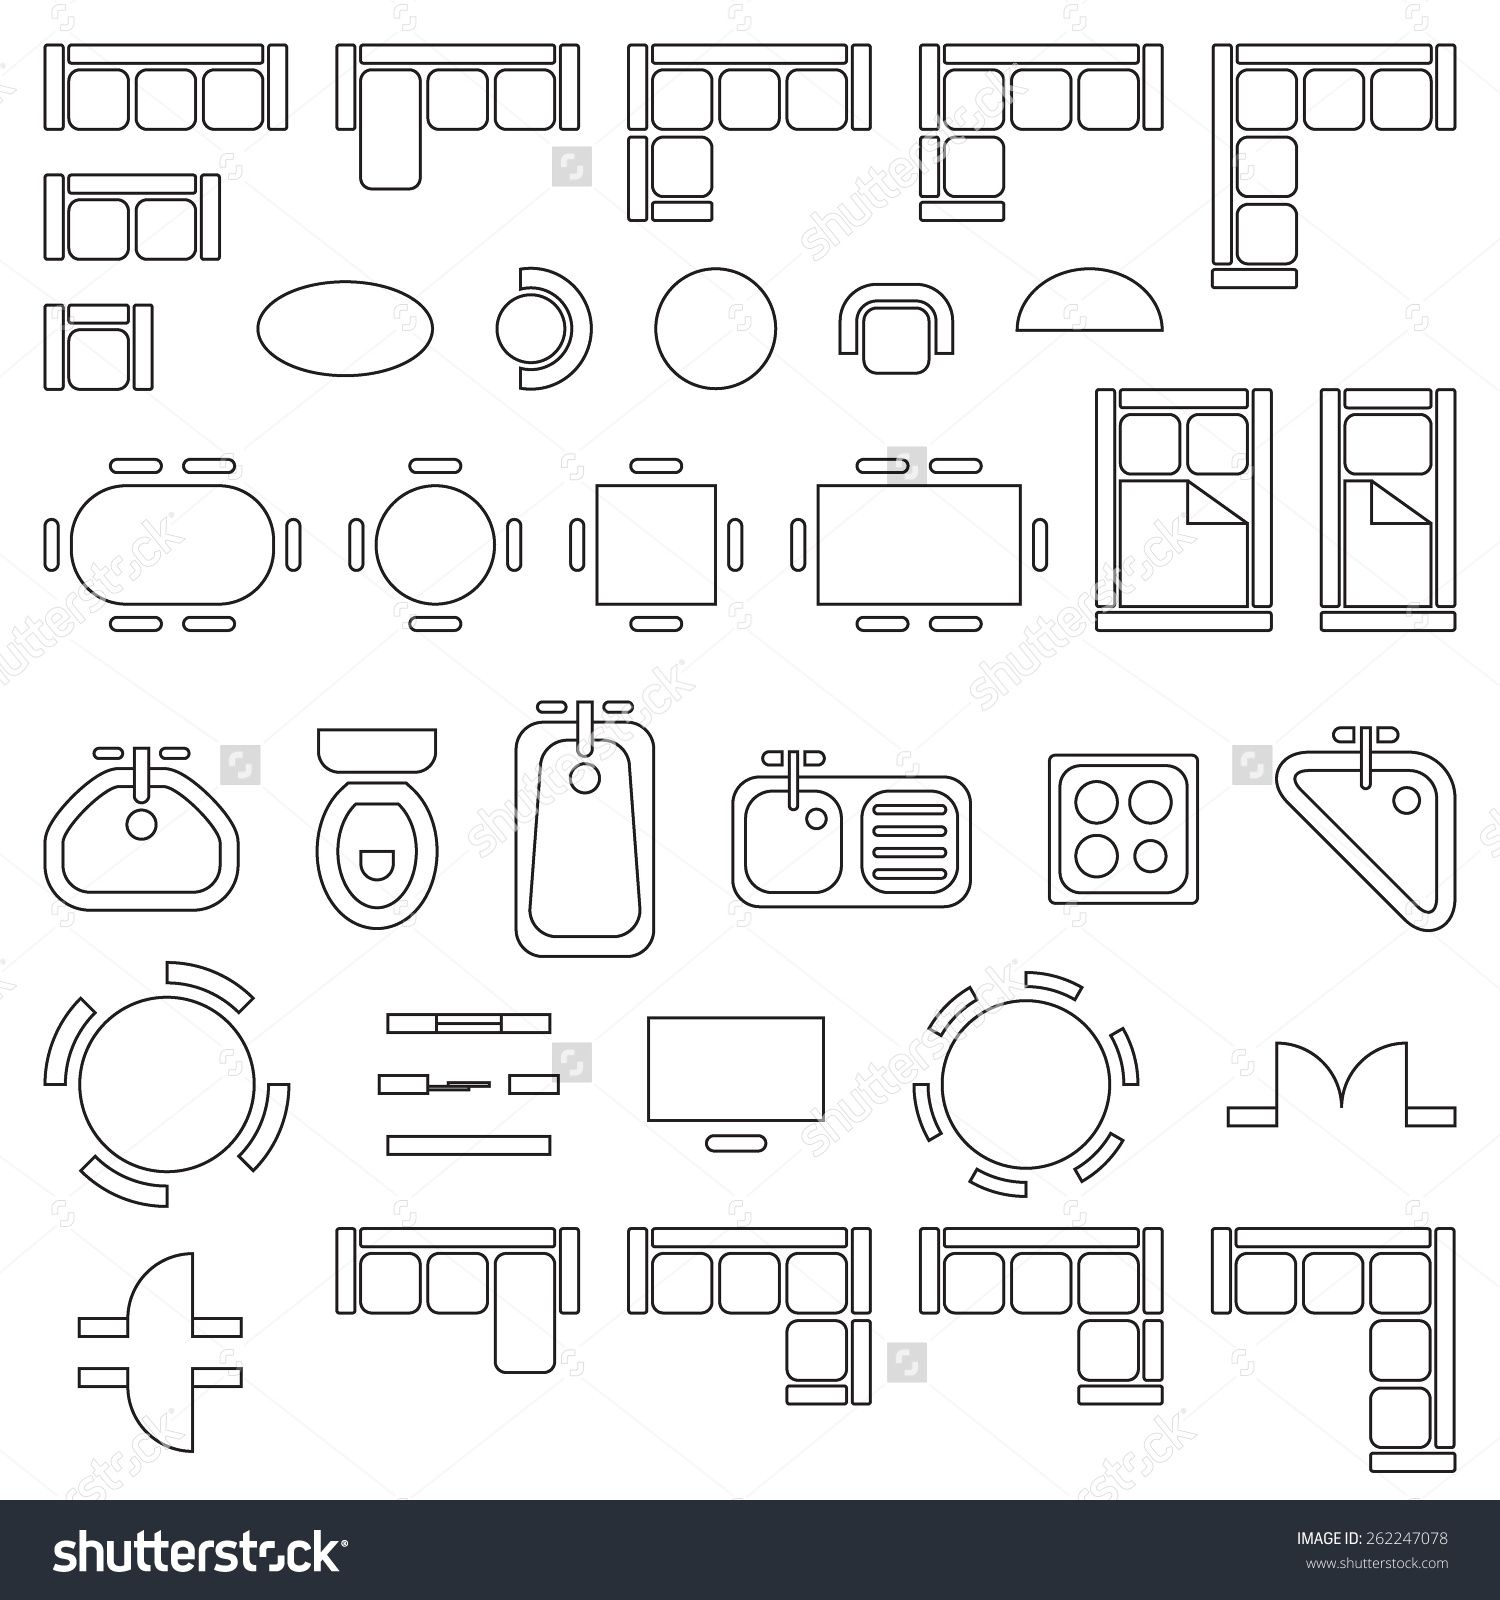 Standard Furniture Symbols Used In Architecture Plans Icons Set Save To A Lightbox Dining Room